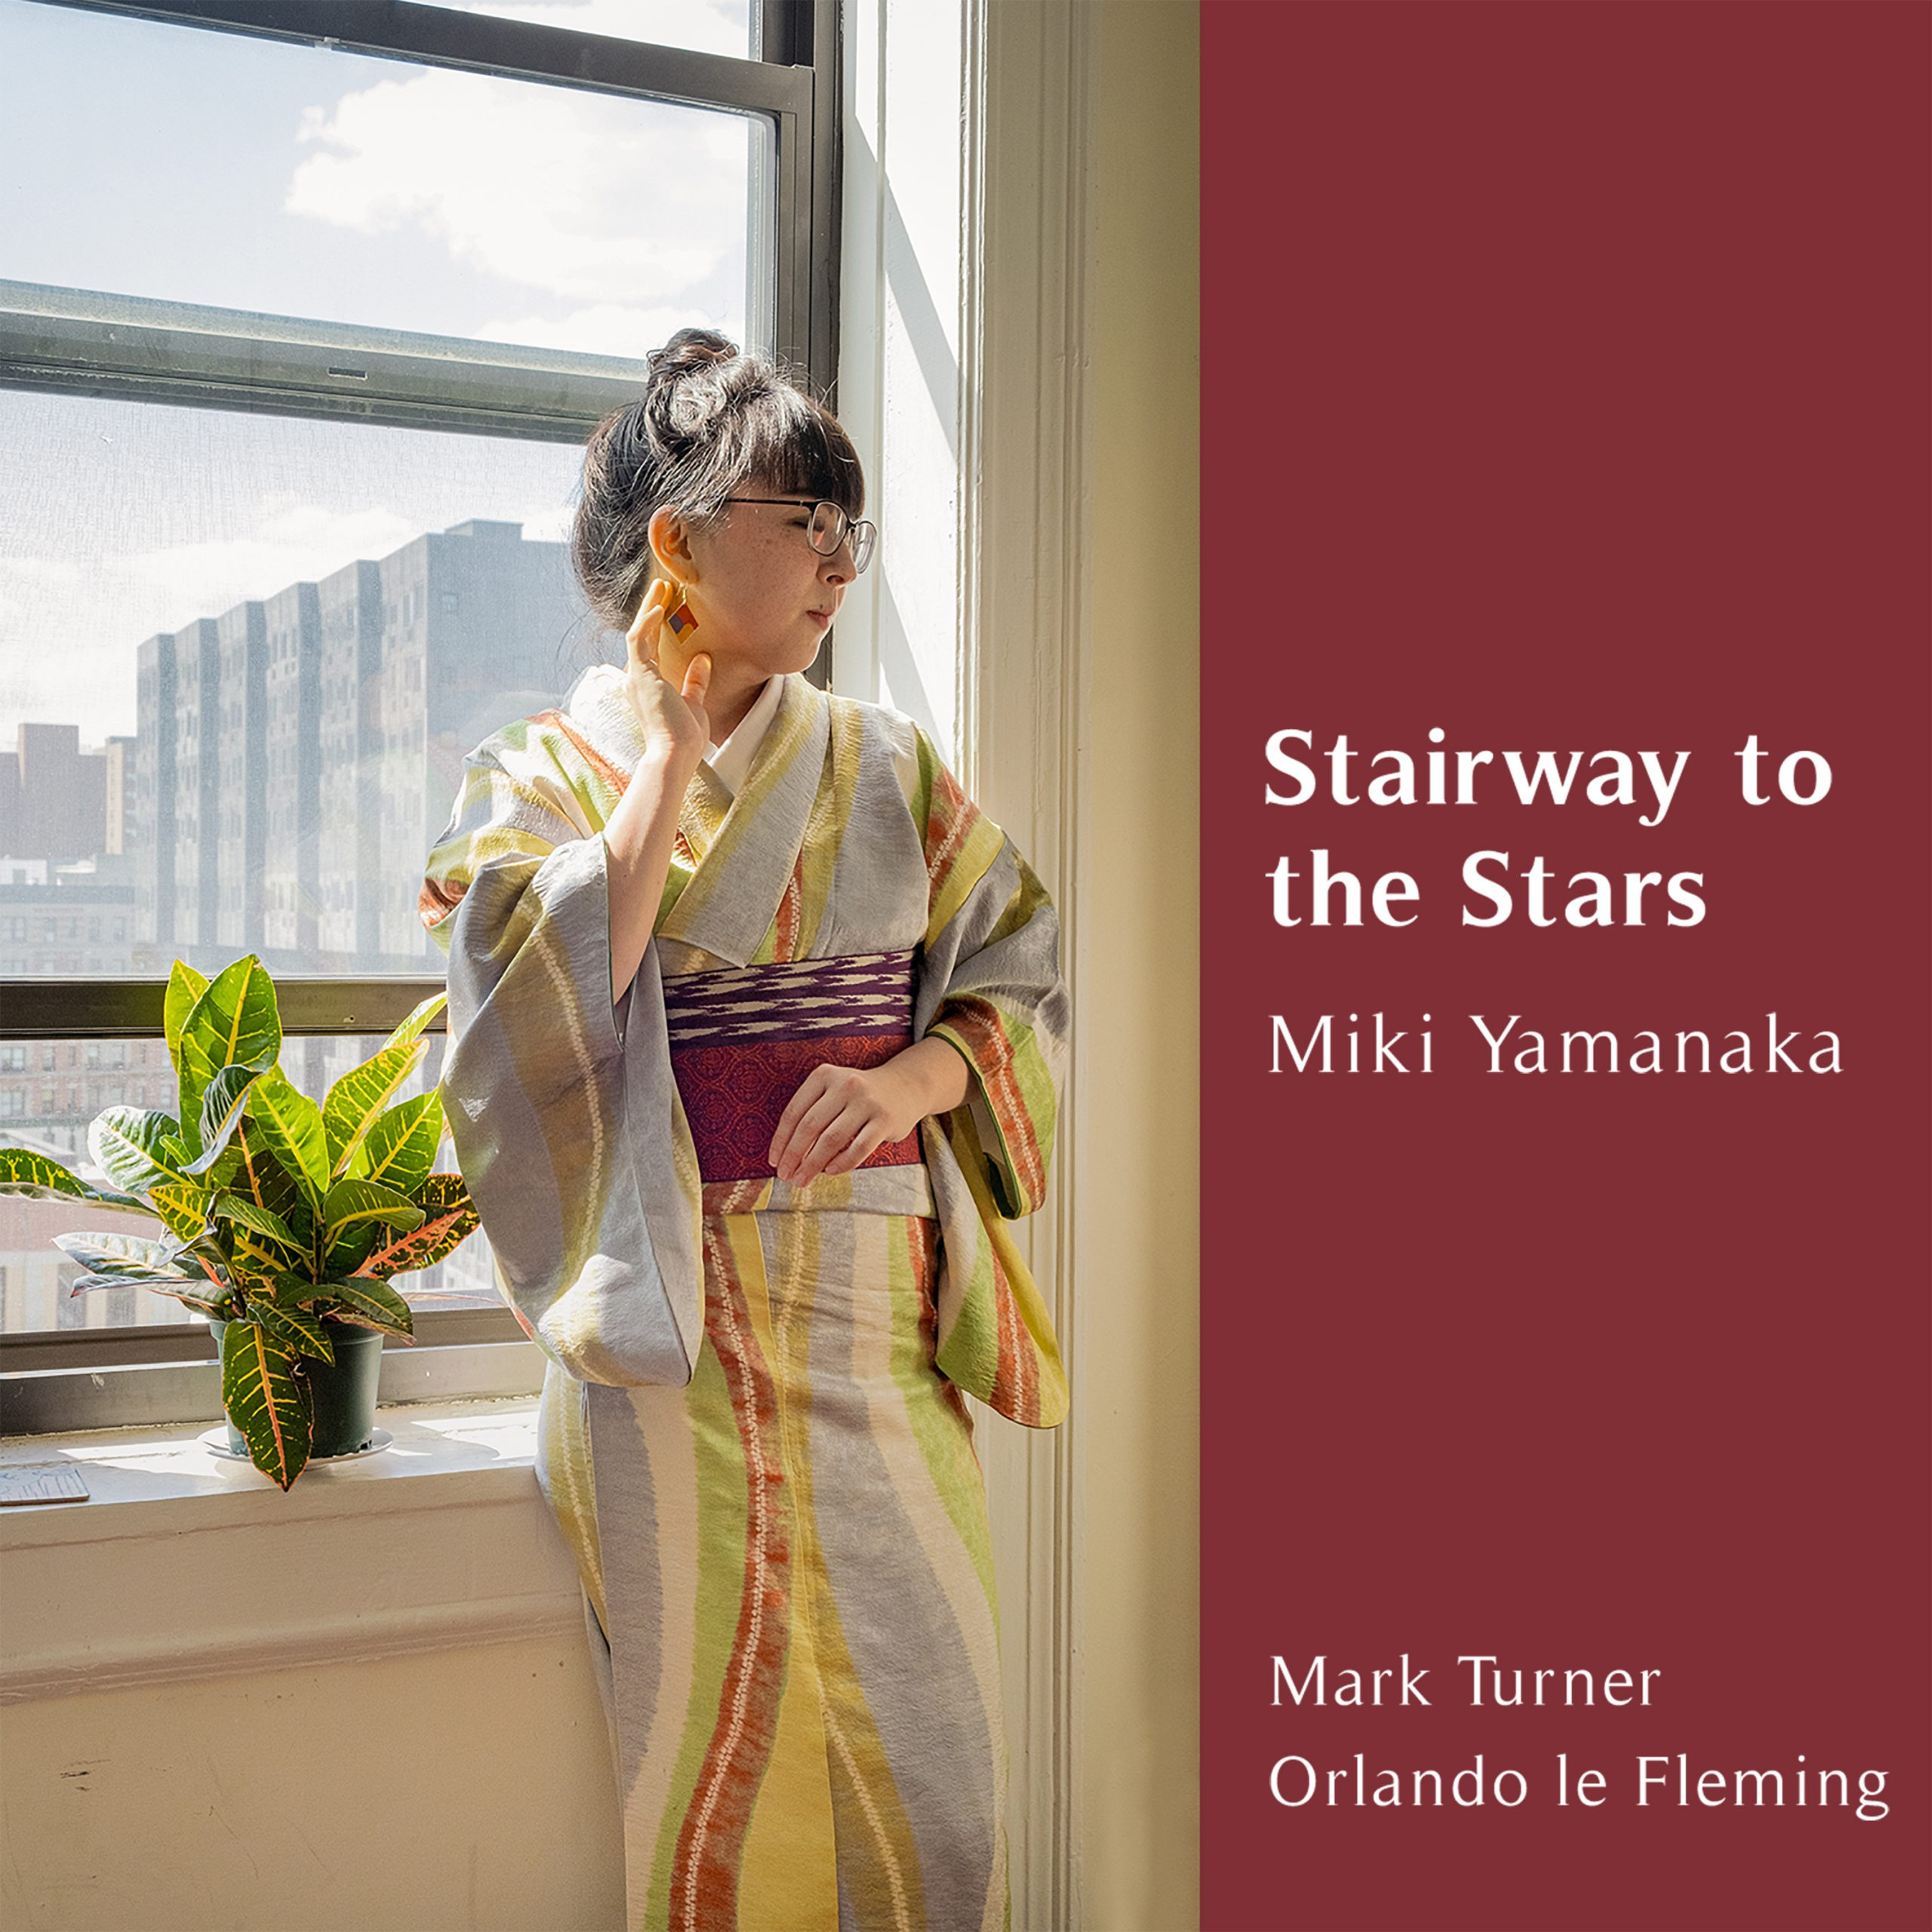 REVIEW: Miki Yamanaka's 'Stairway to the Stars' – Making A Scene